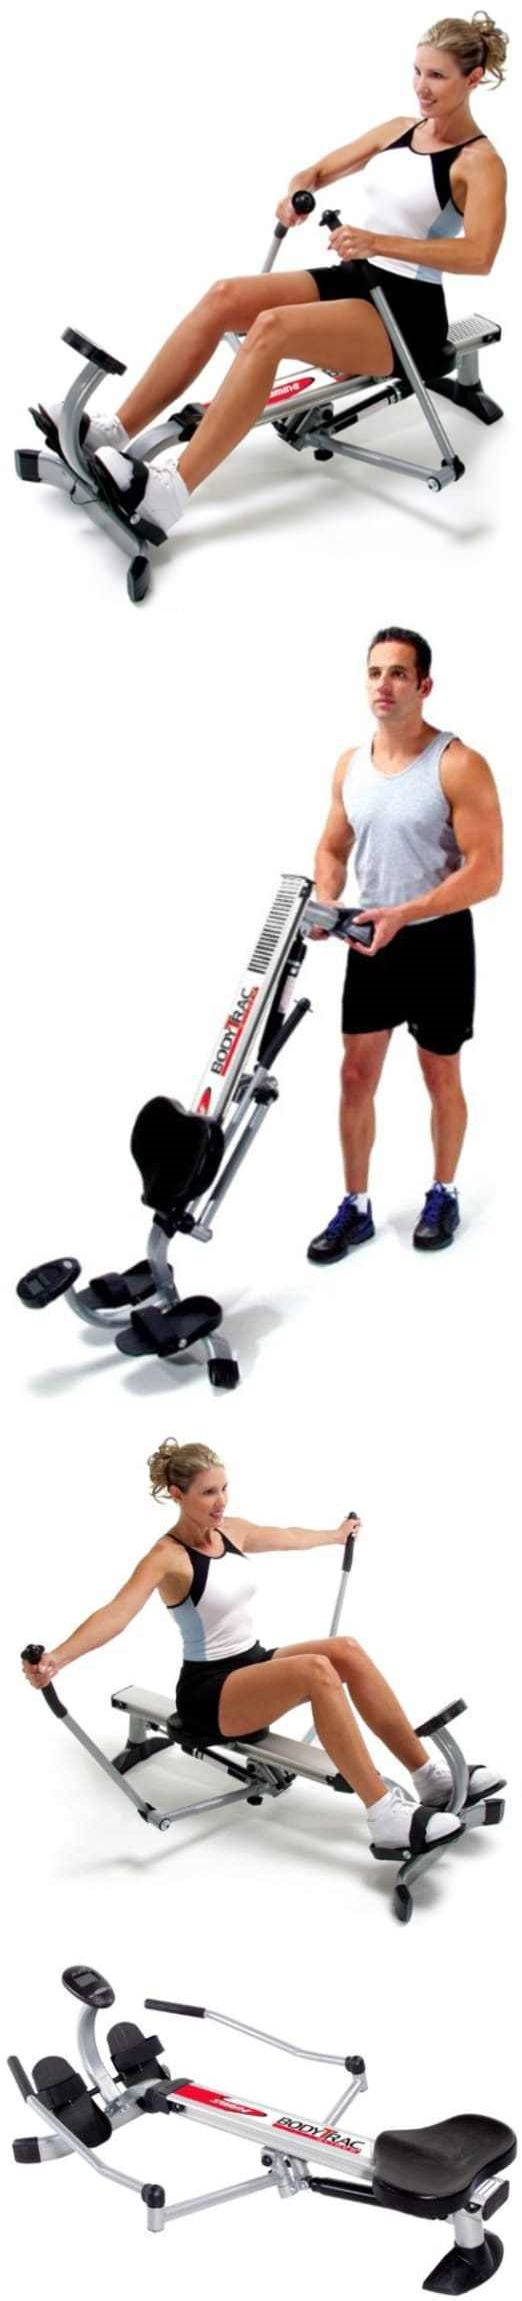 Rowing Machines 28060: Rowing Training Machine Home Gym Muscle Fitness Muscle With Monitor Comfy New -> BUY IT NOW ONLY: $180.5 on eBay!